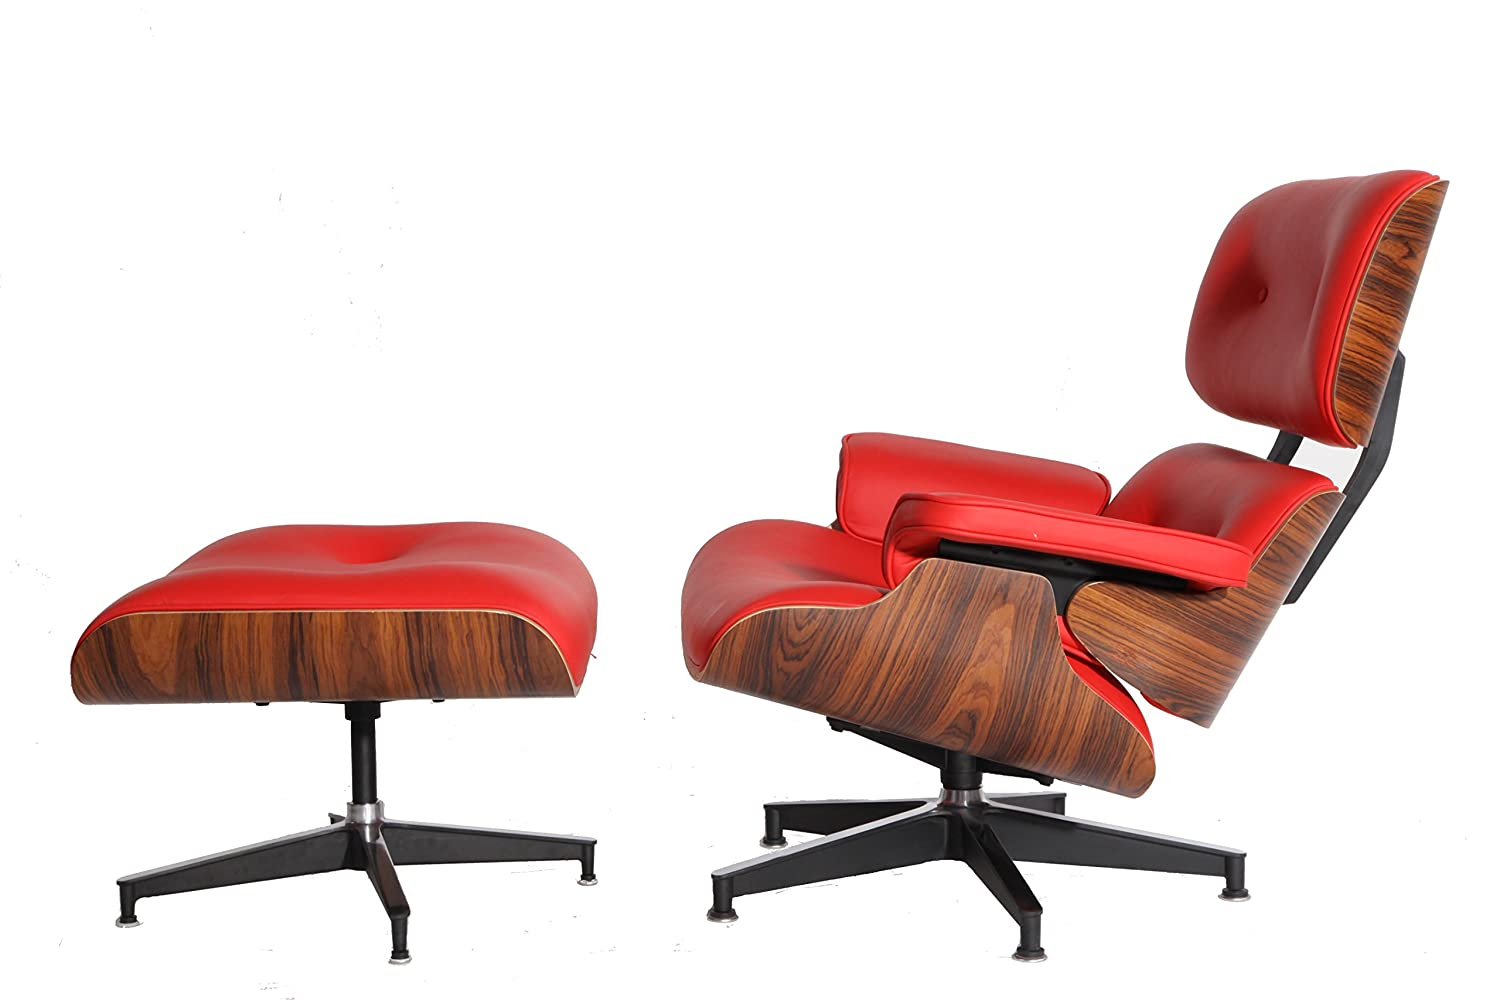 Modern Sources - Mid-Century Plywood Lounge Chair & Ottoman Eames Replica  Red Palisander Real Premium Leather